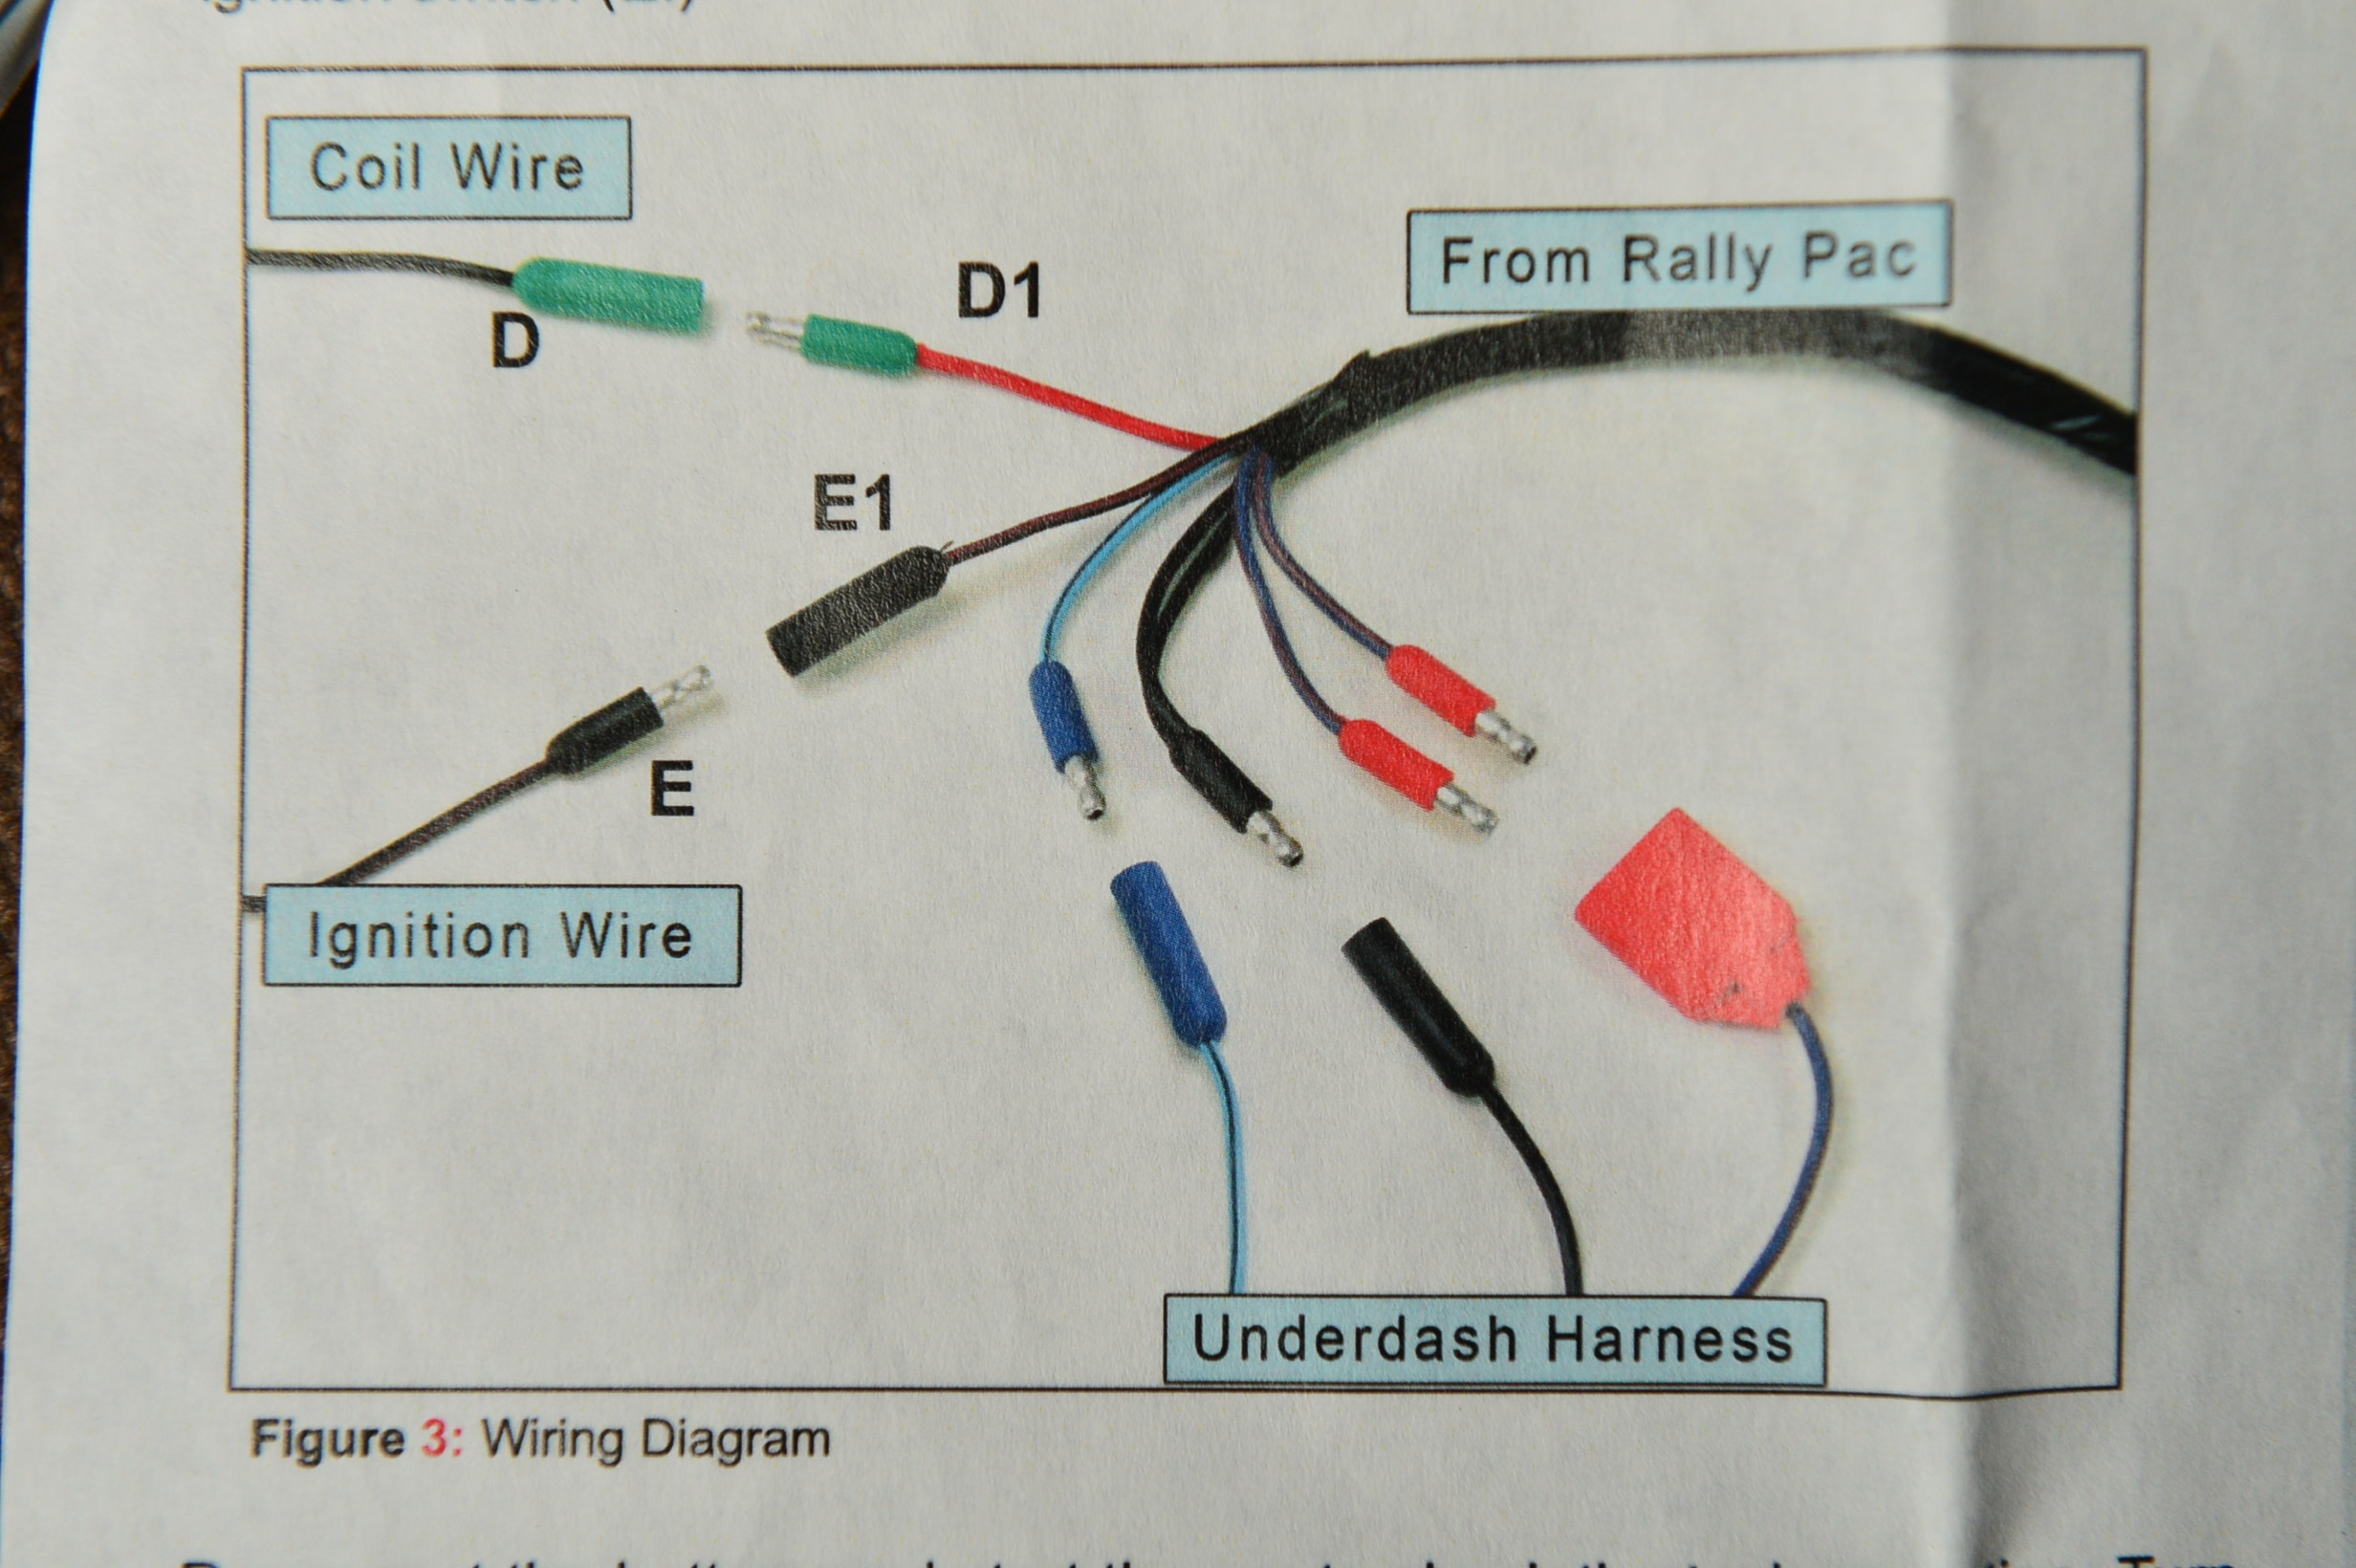 1966 mustang rally pac wiring wiring diagrams the4 wiring rally pac photo 175461917 how to add rally pac gauges 66 mustang rally pac wiring 1966 mustang rally pac wiring